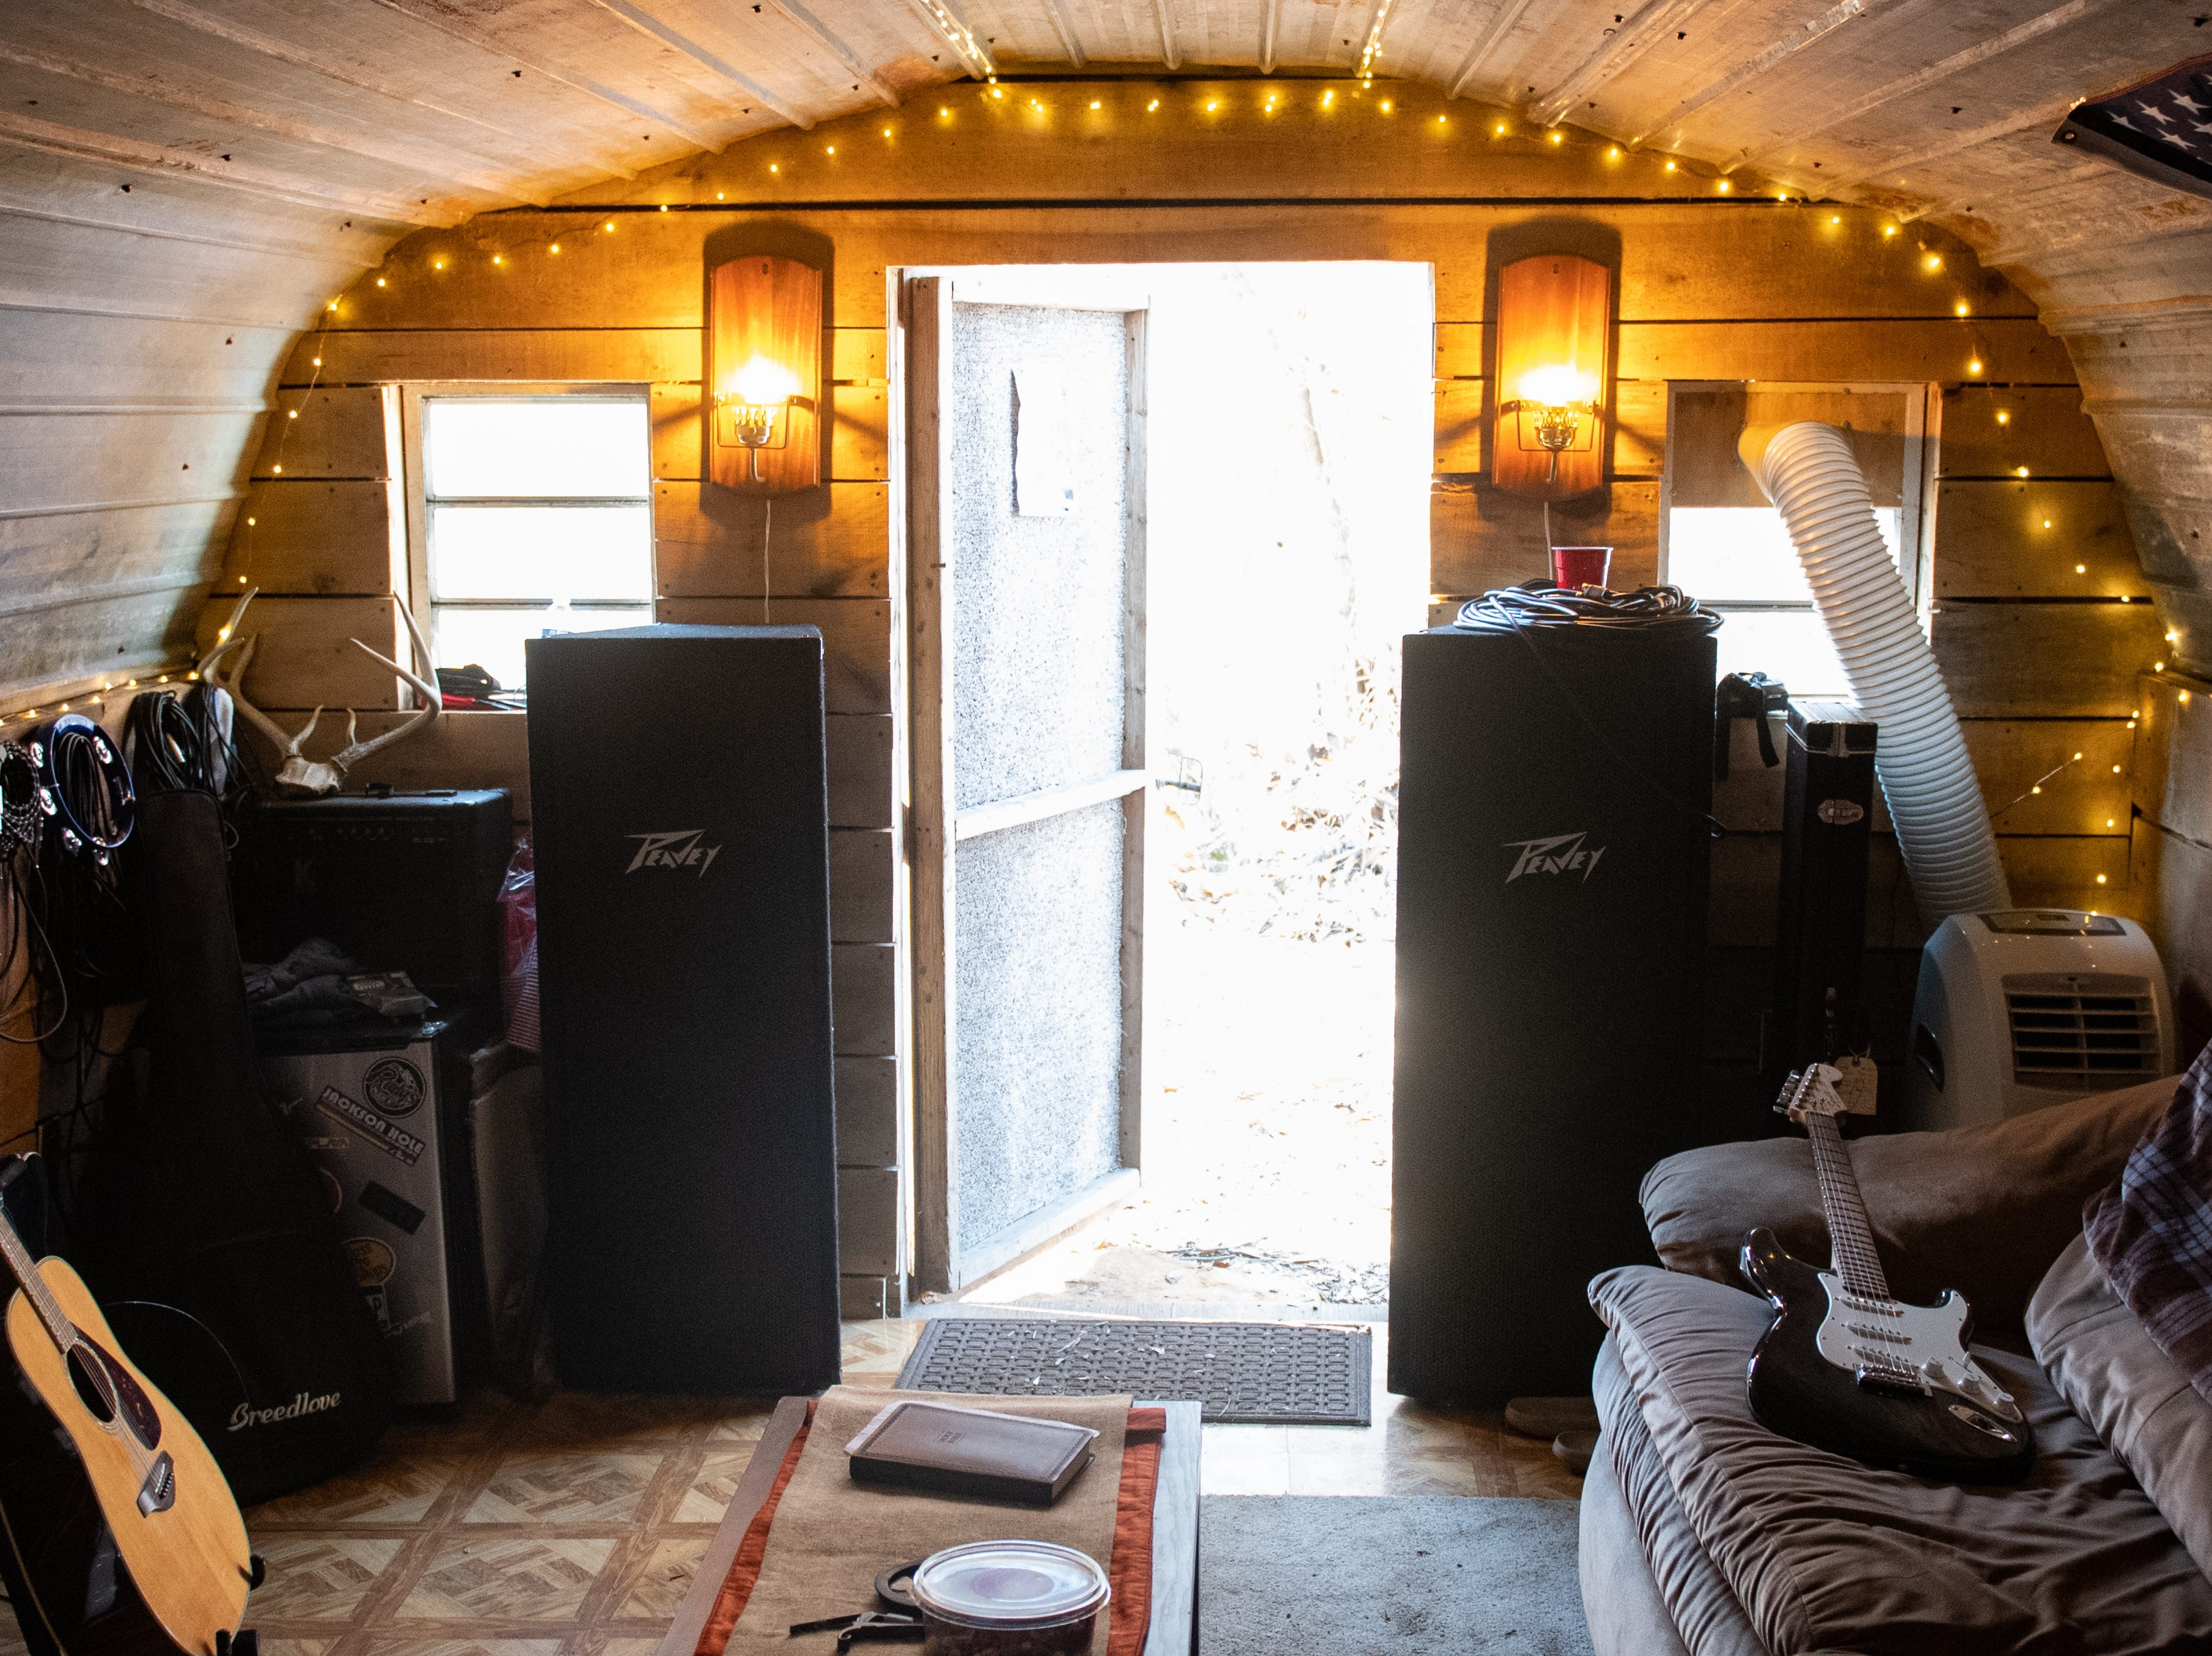 """Jake Puliti, an """"American Idol"""" hopeful, and his friends spend a lot of time in the their Newberry Township recording studio, converted from a chicken coop. The space is like a second home for all of them."""